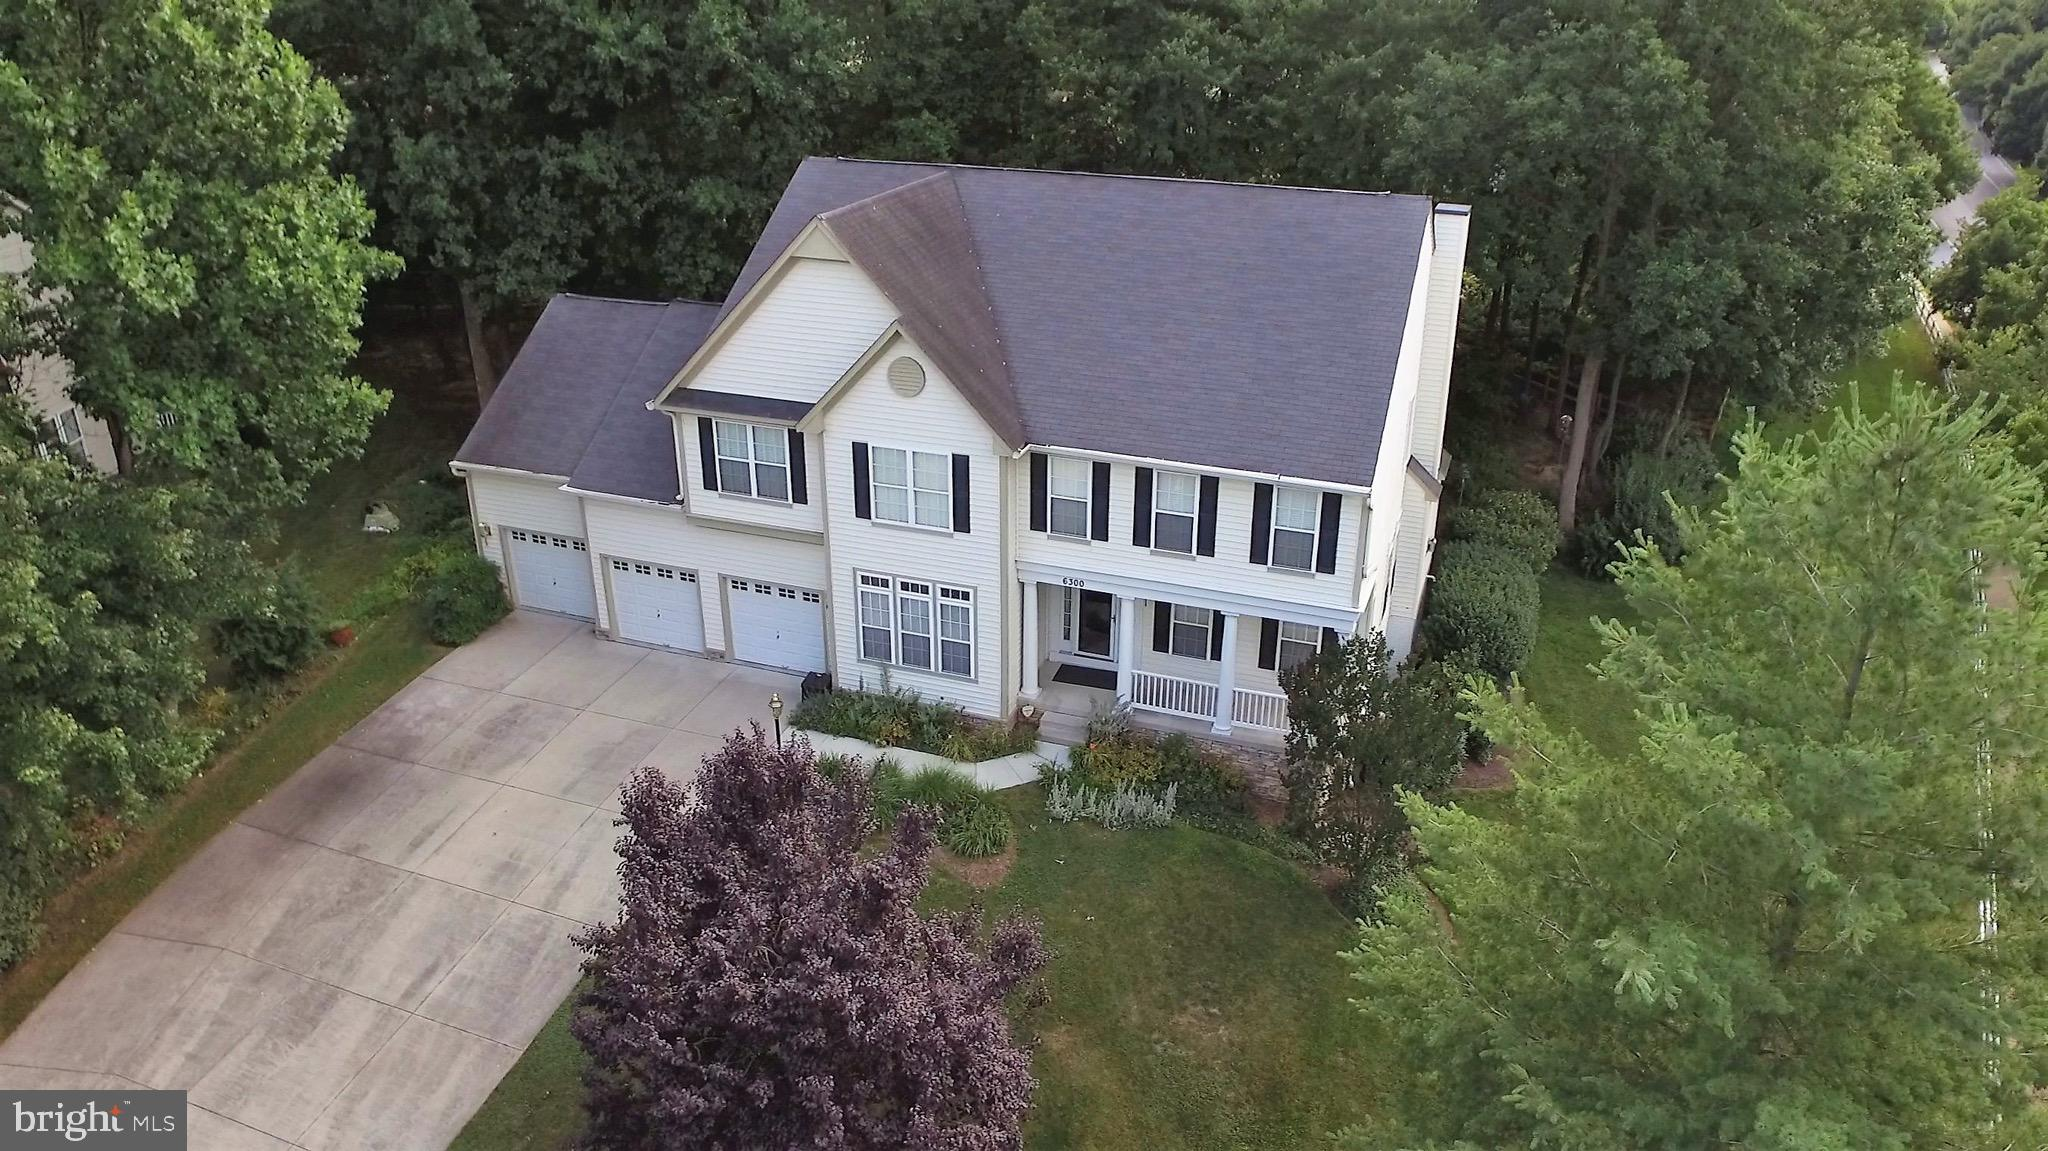 6300 ANGEL ROSE COURT, COLUMBIA, MD 21044